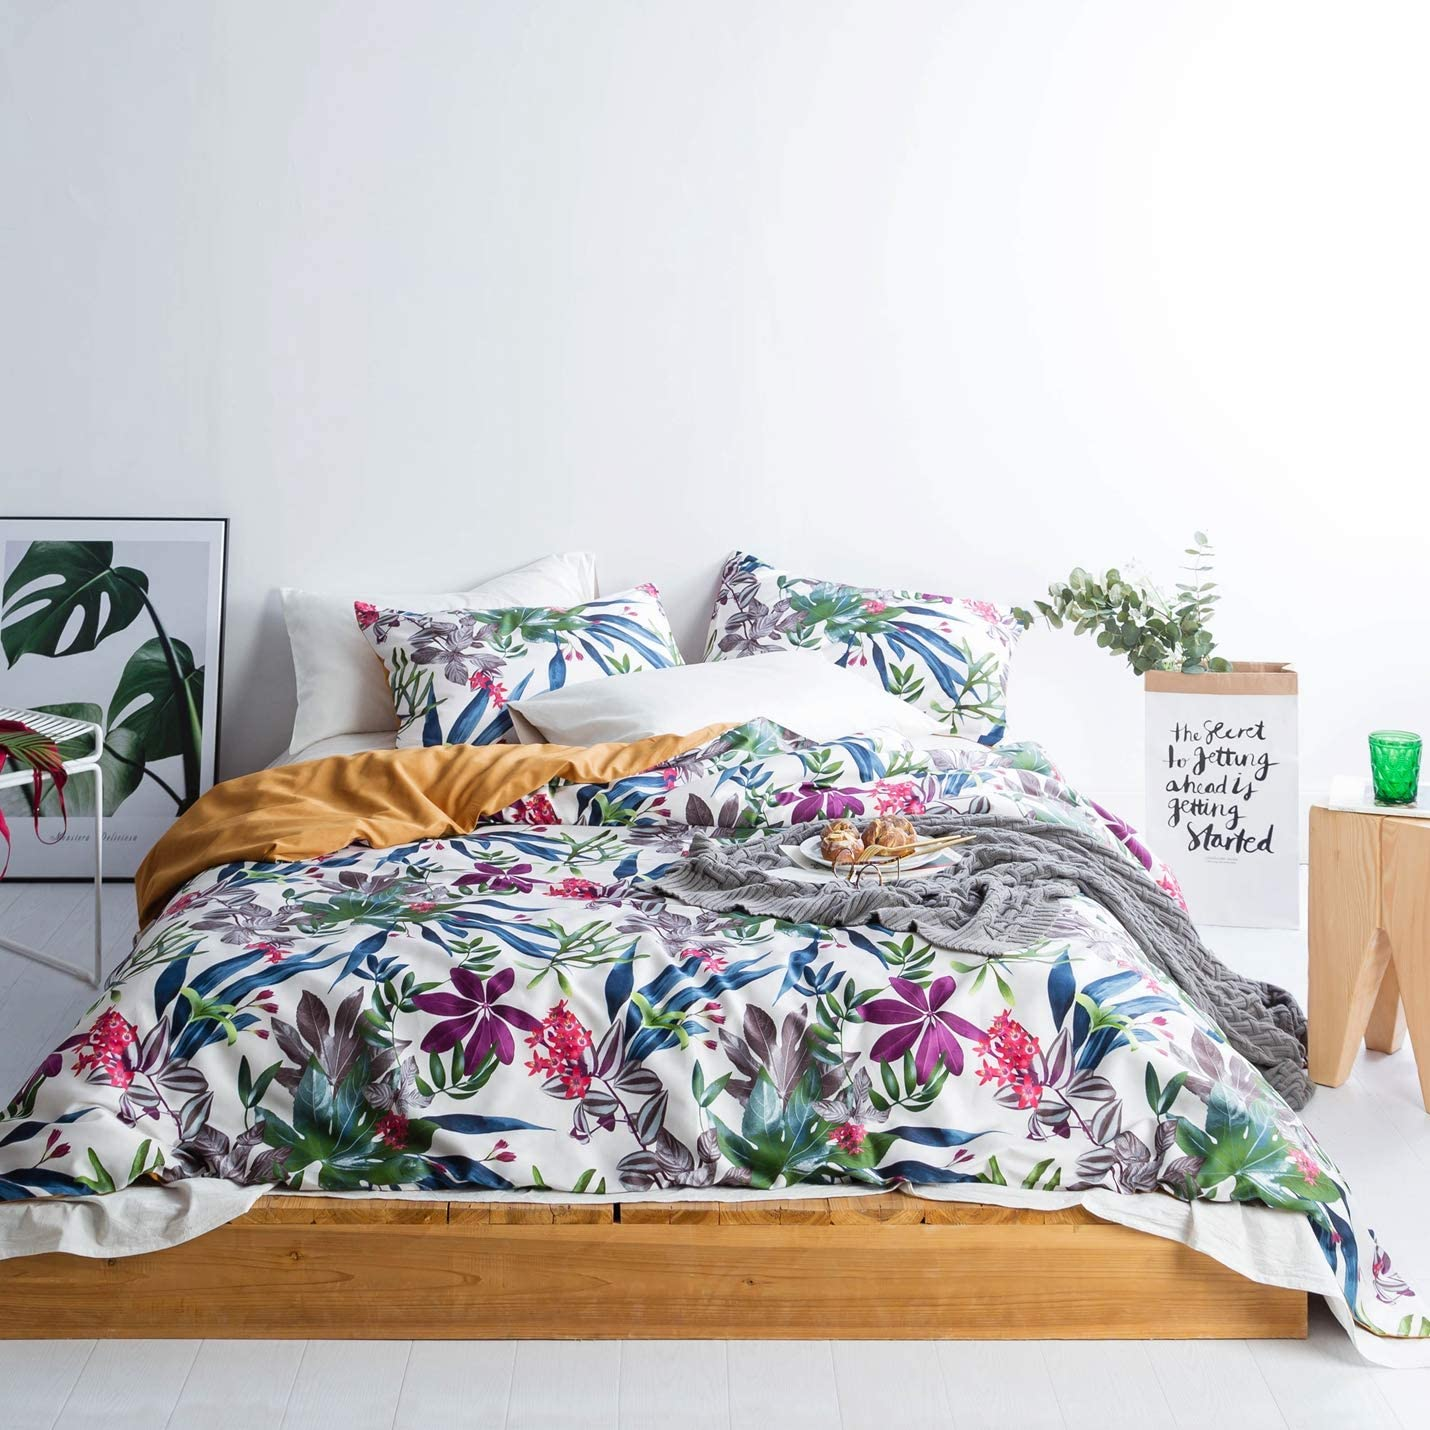 SUSYBAO 3 Pieces Duvet Cover Set 100% Egyptian Cotton Sateen Queen Size Tropical Floral Print Bedding with Zipper Ties 1 Reversible Duvet Cover 2 Pillowcases Luxury Quality Silky Soft Breathable